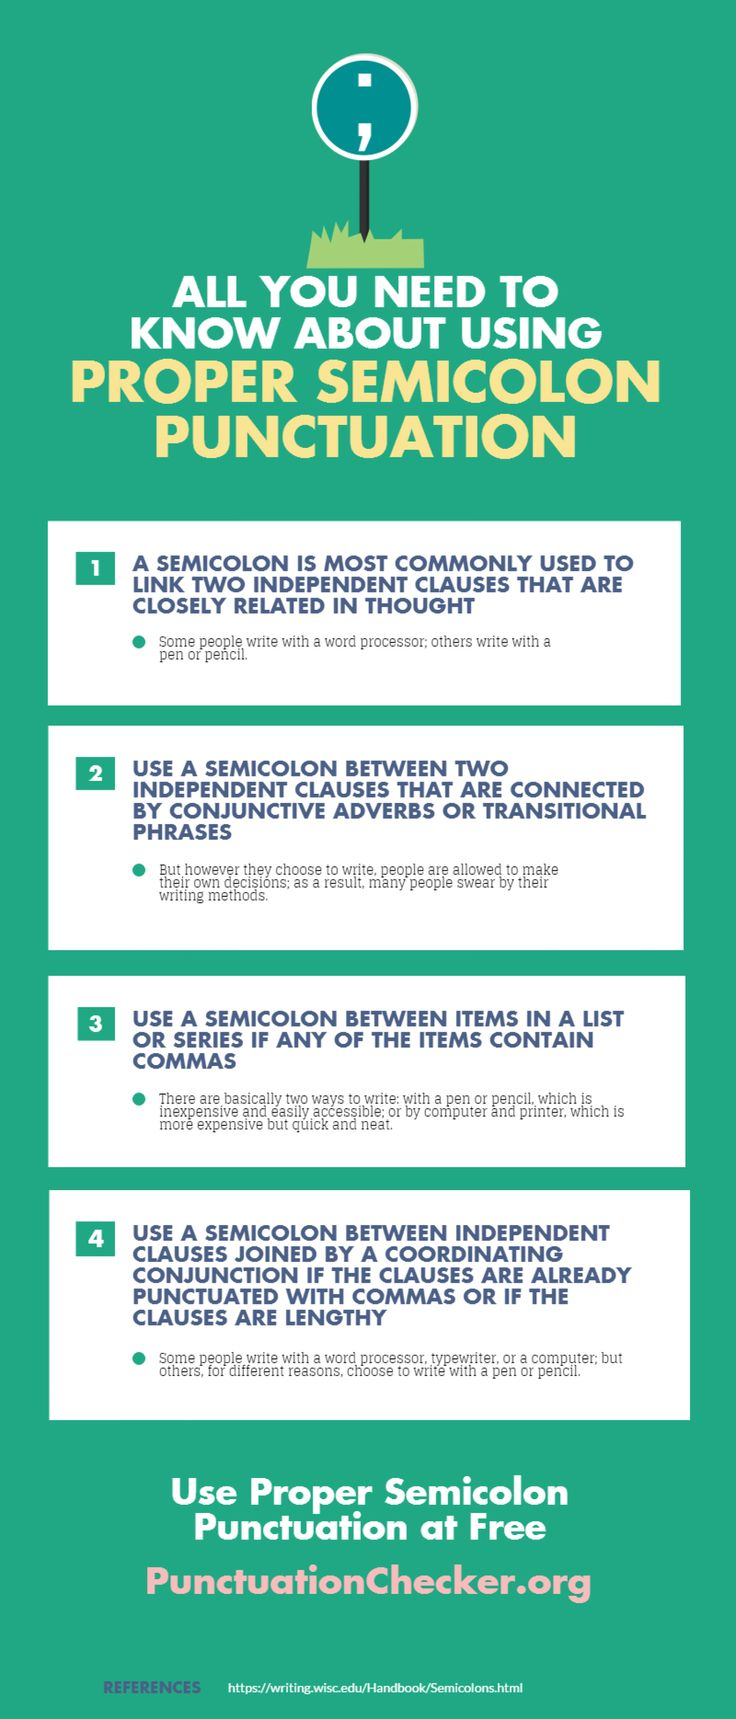 All You Need to Know About Using Proper Semicolon Punctuation Infographic